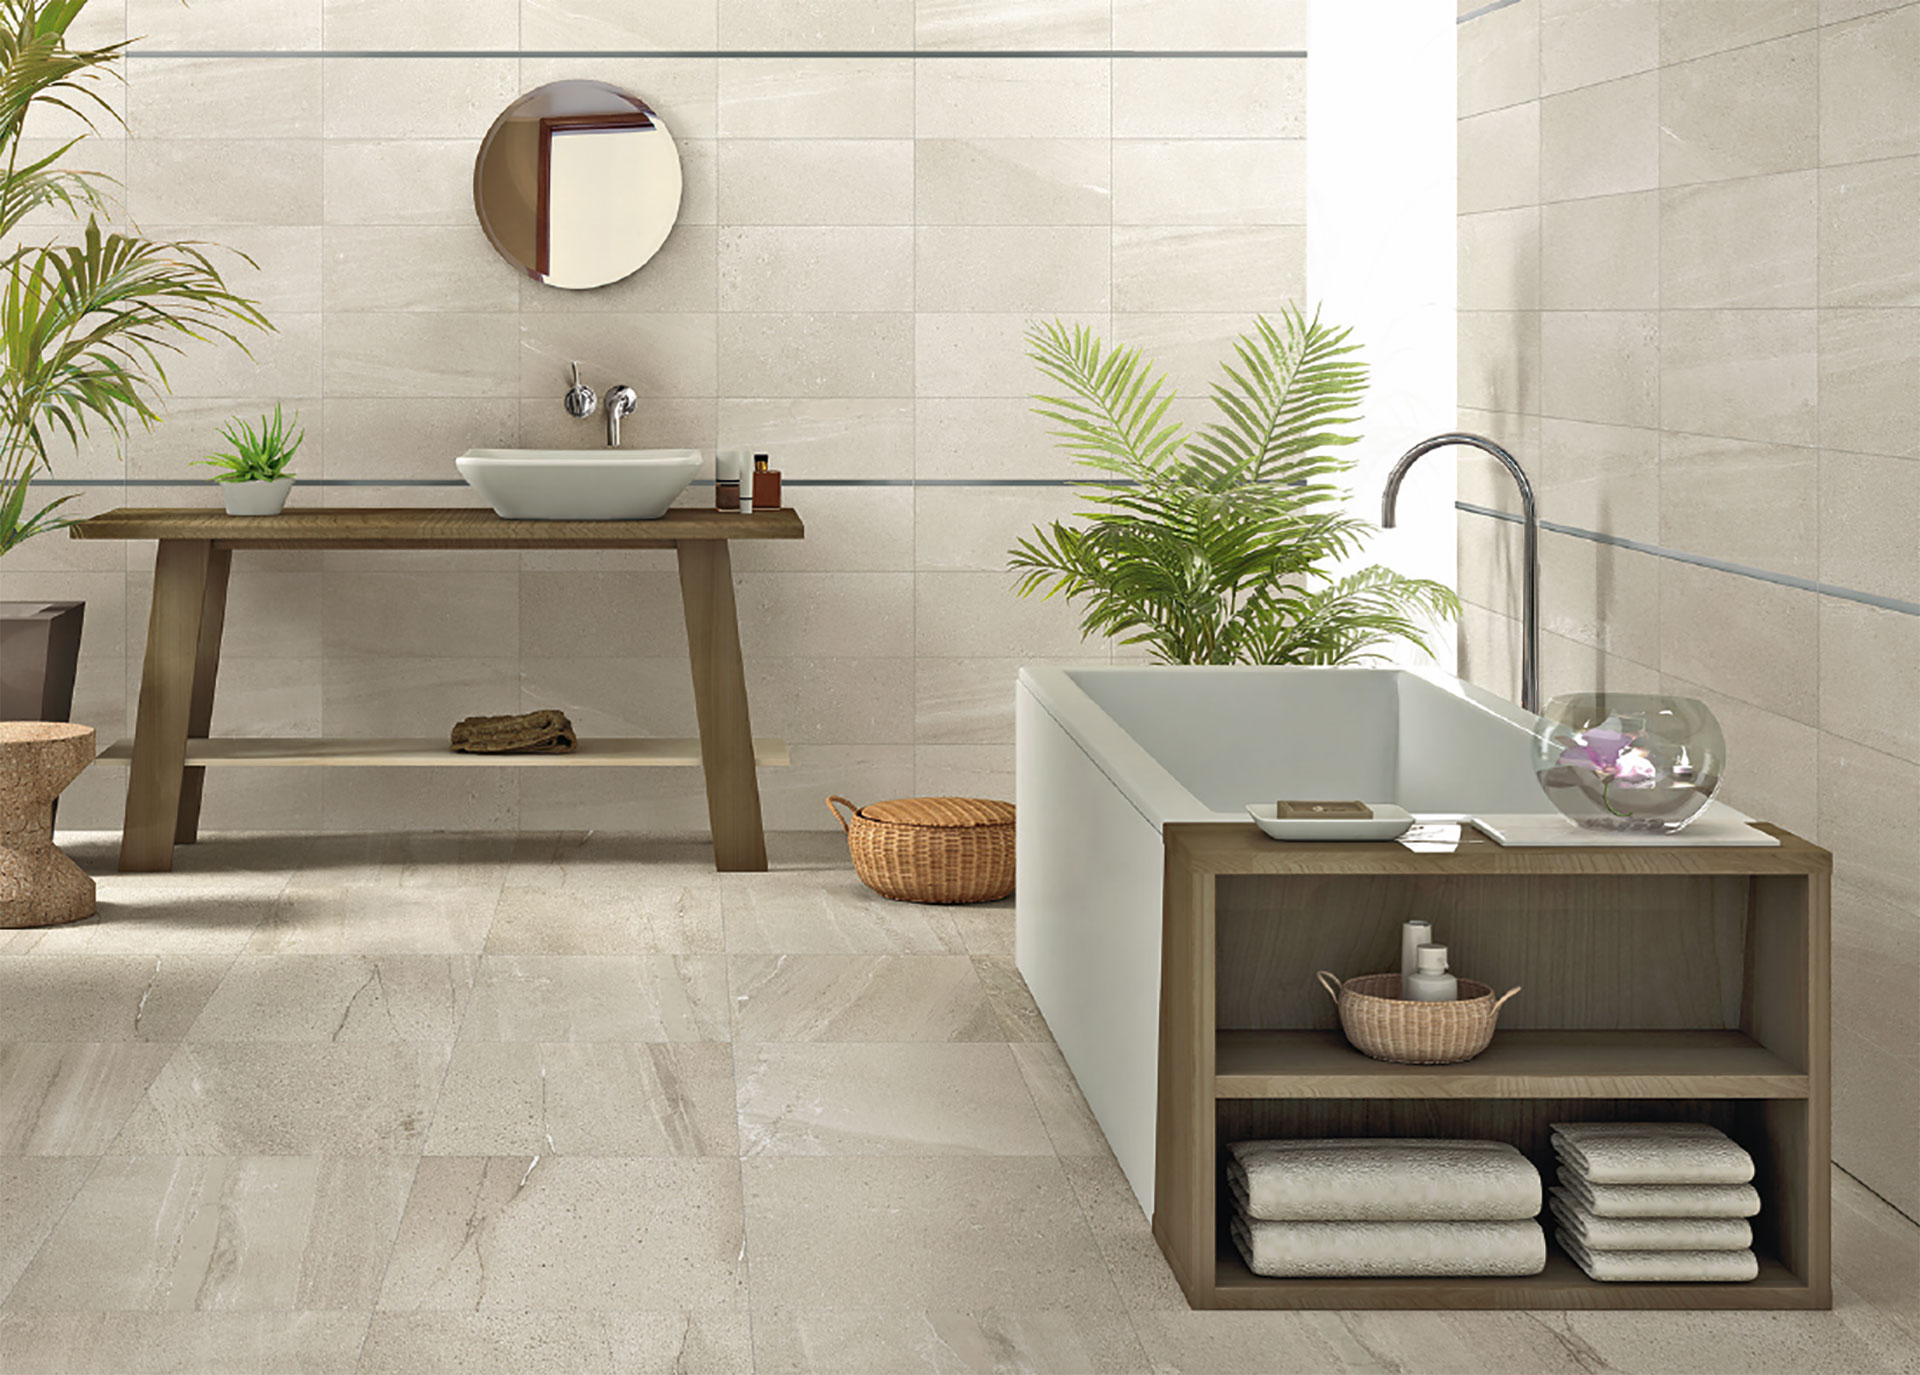 Bathrooms And Kitchens Classic And Modern Design From Iris Ceramica Floornature